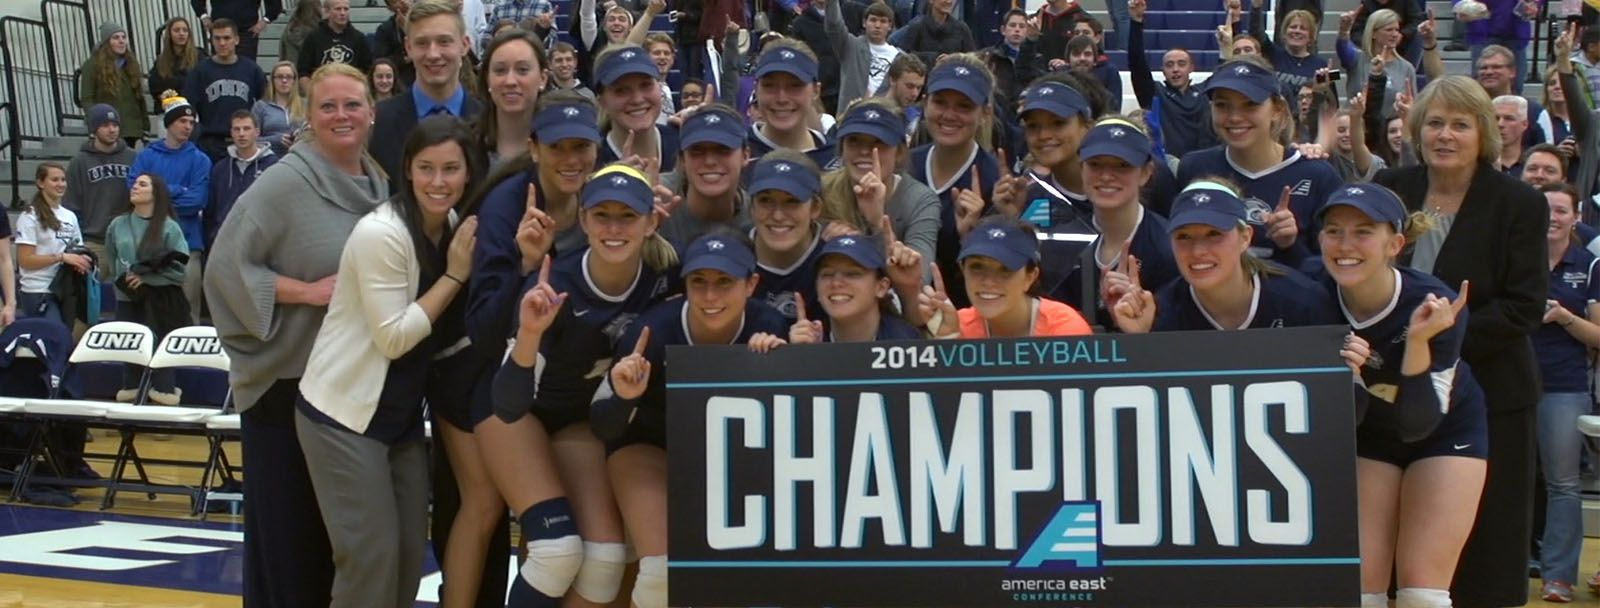 UNH women's volleyball team 2014 America East champions